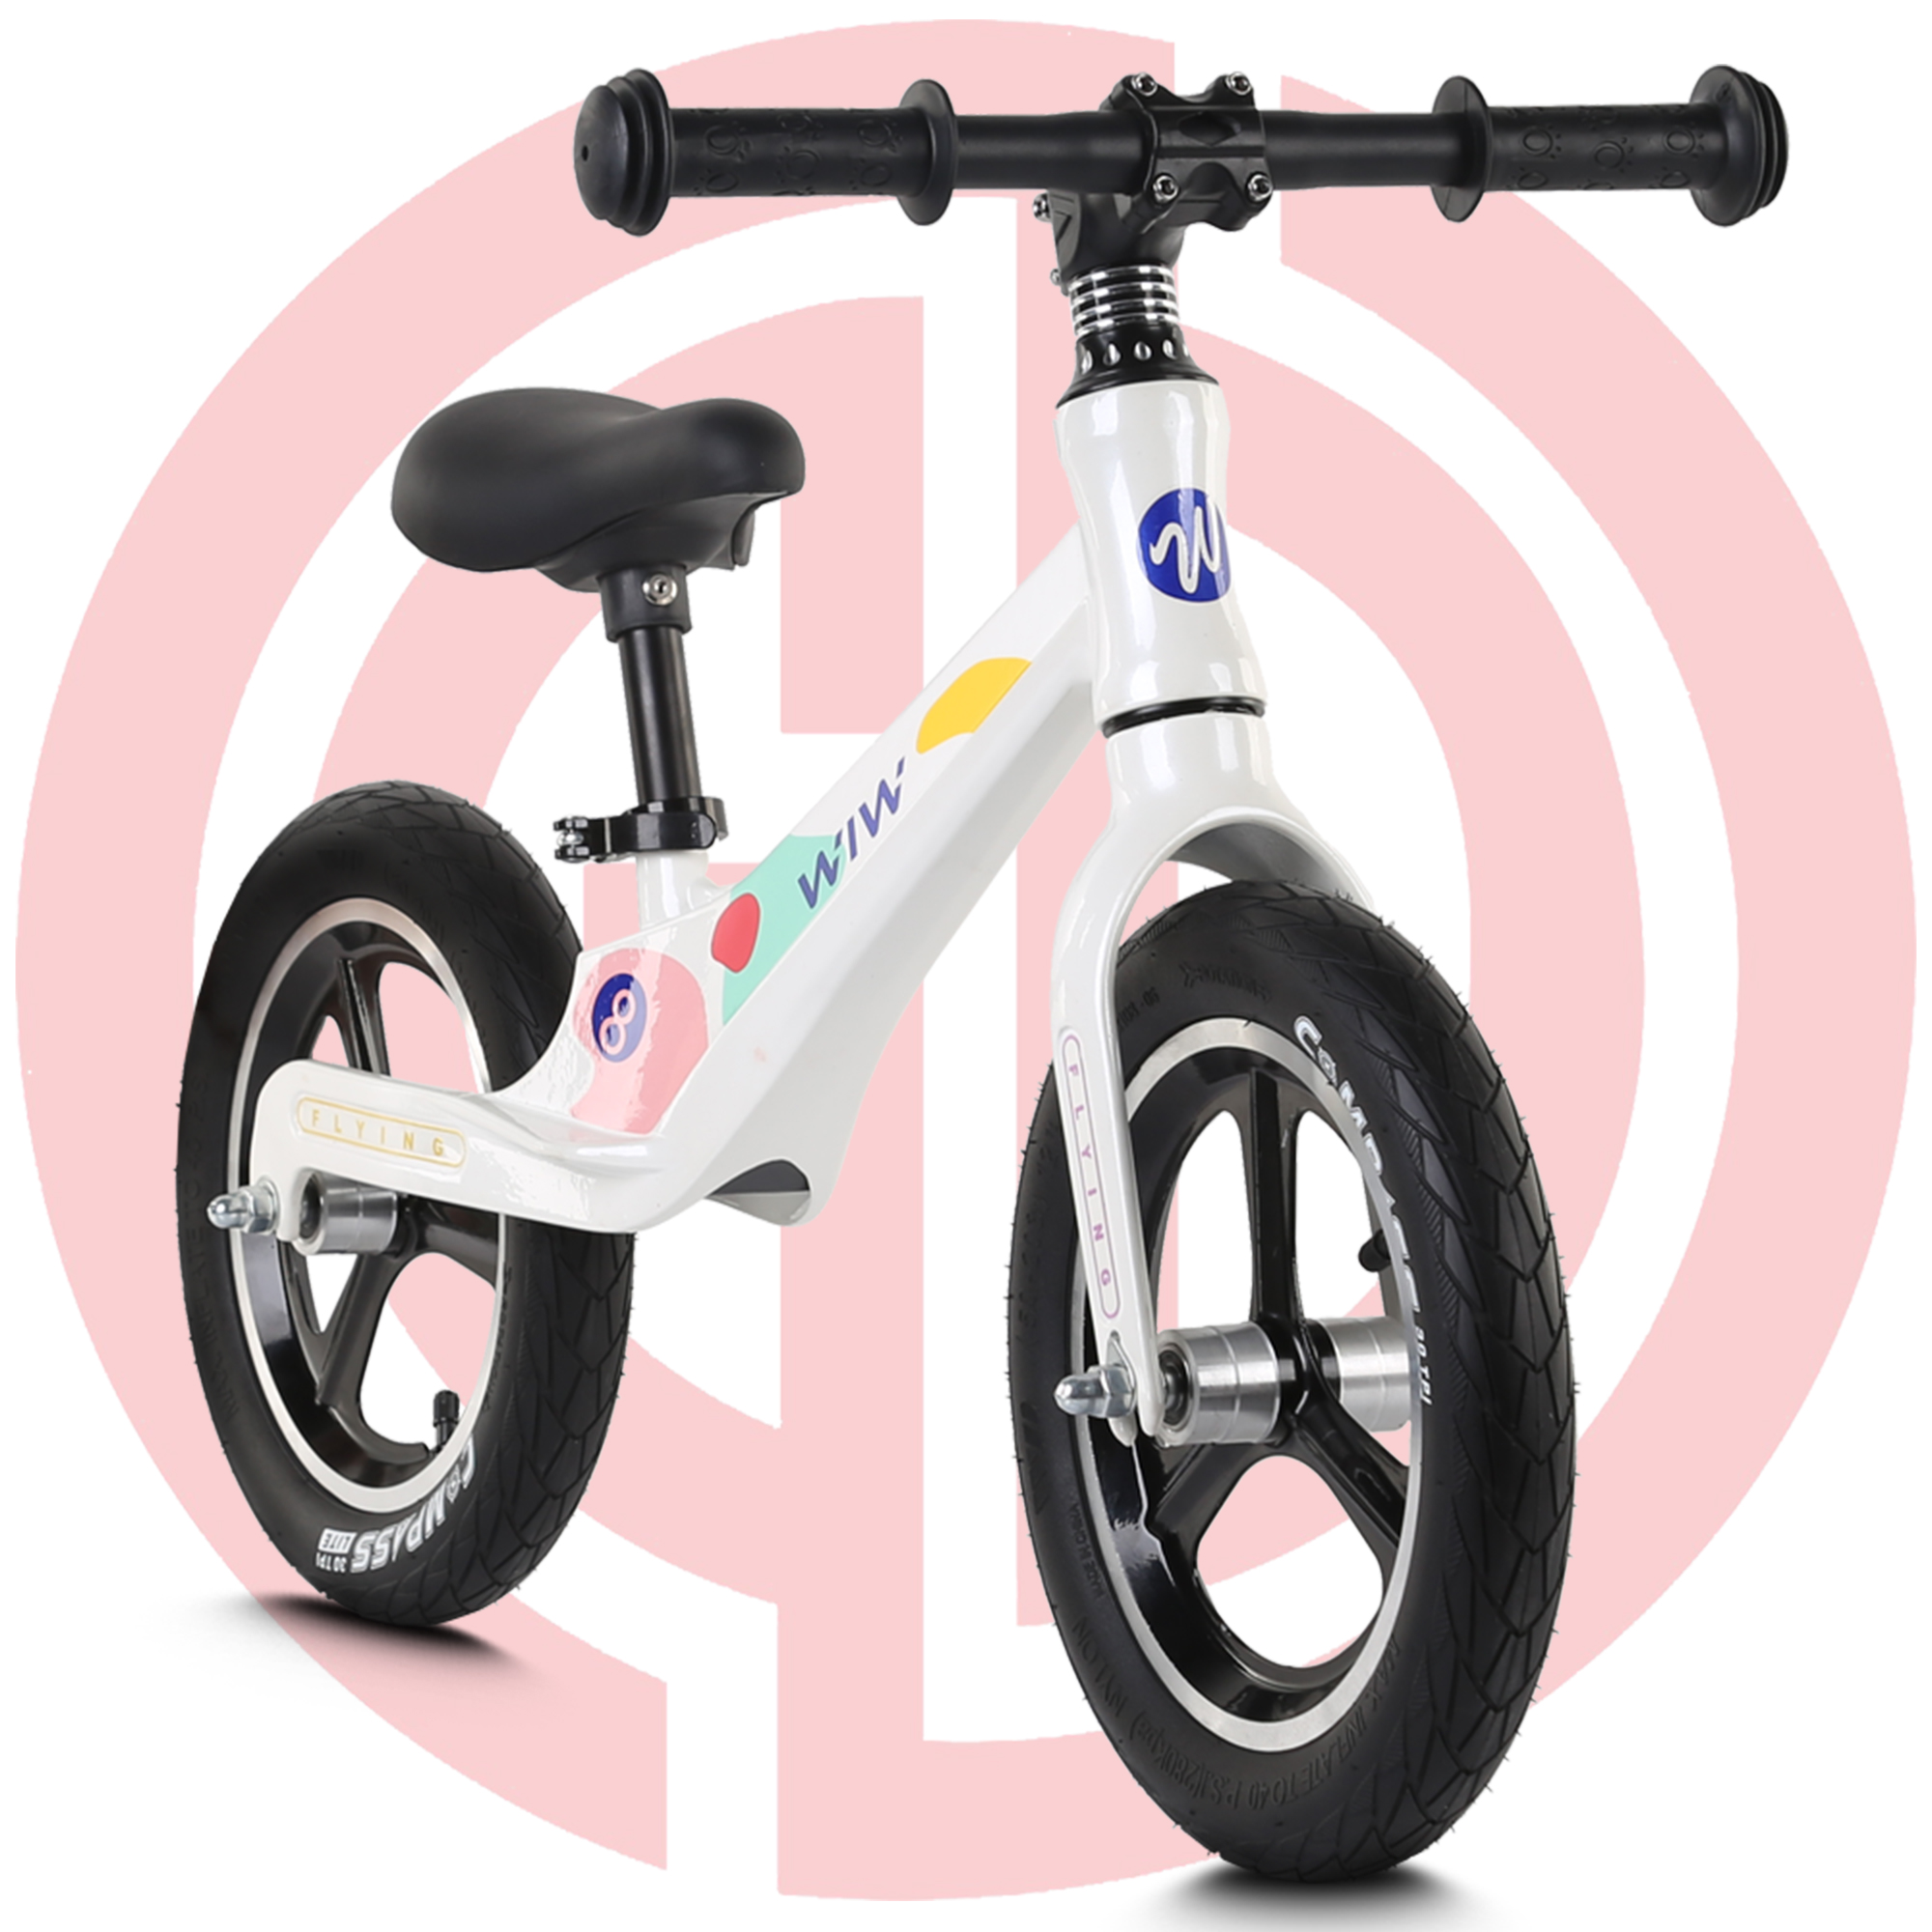 HOT SELLING KIDS BALANCE BIKE::Kids balance bike, featured kids bike, various designs, whole life warranty